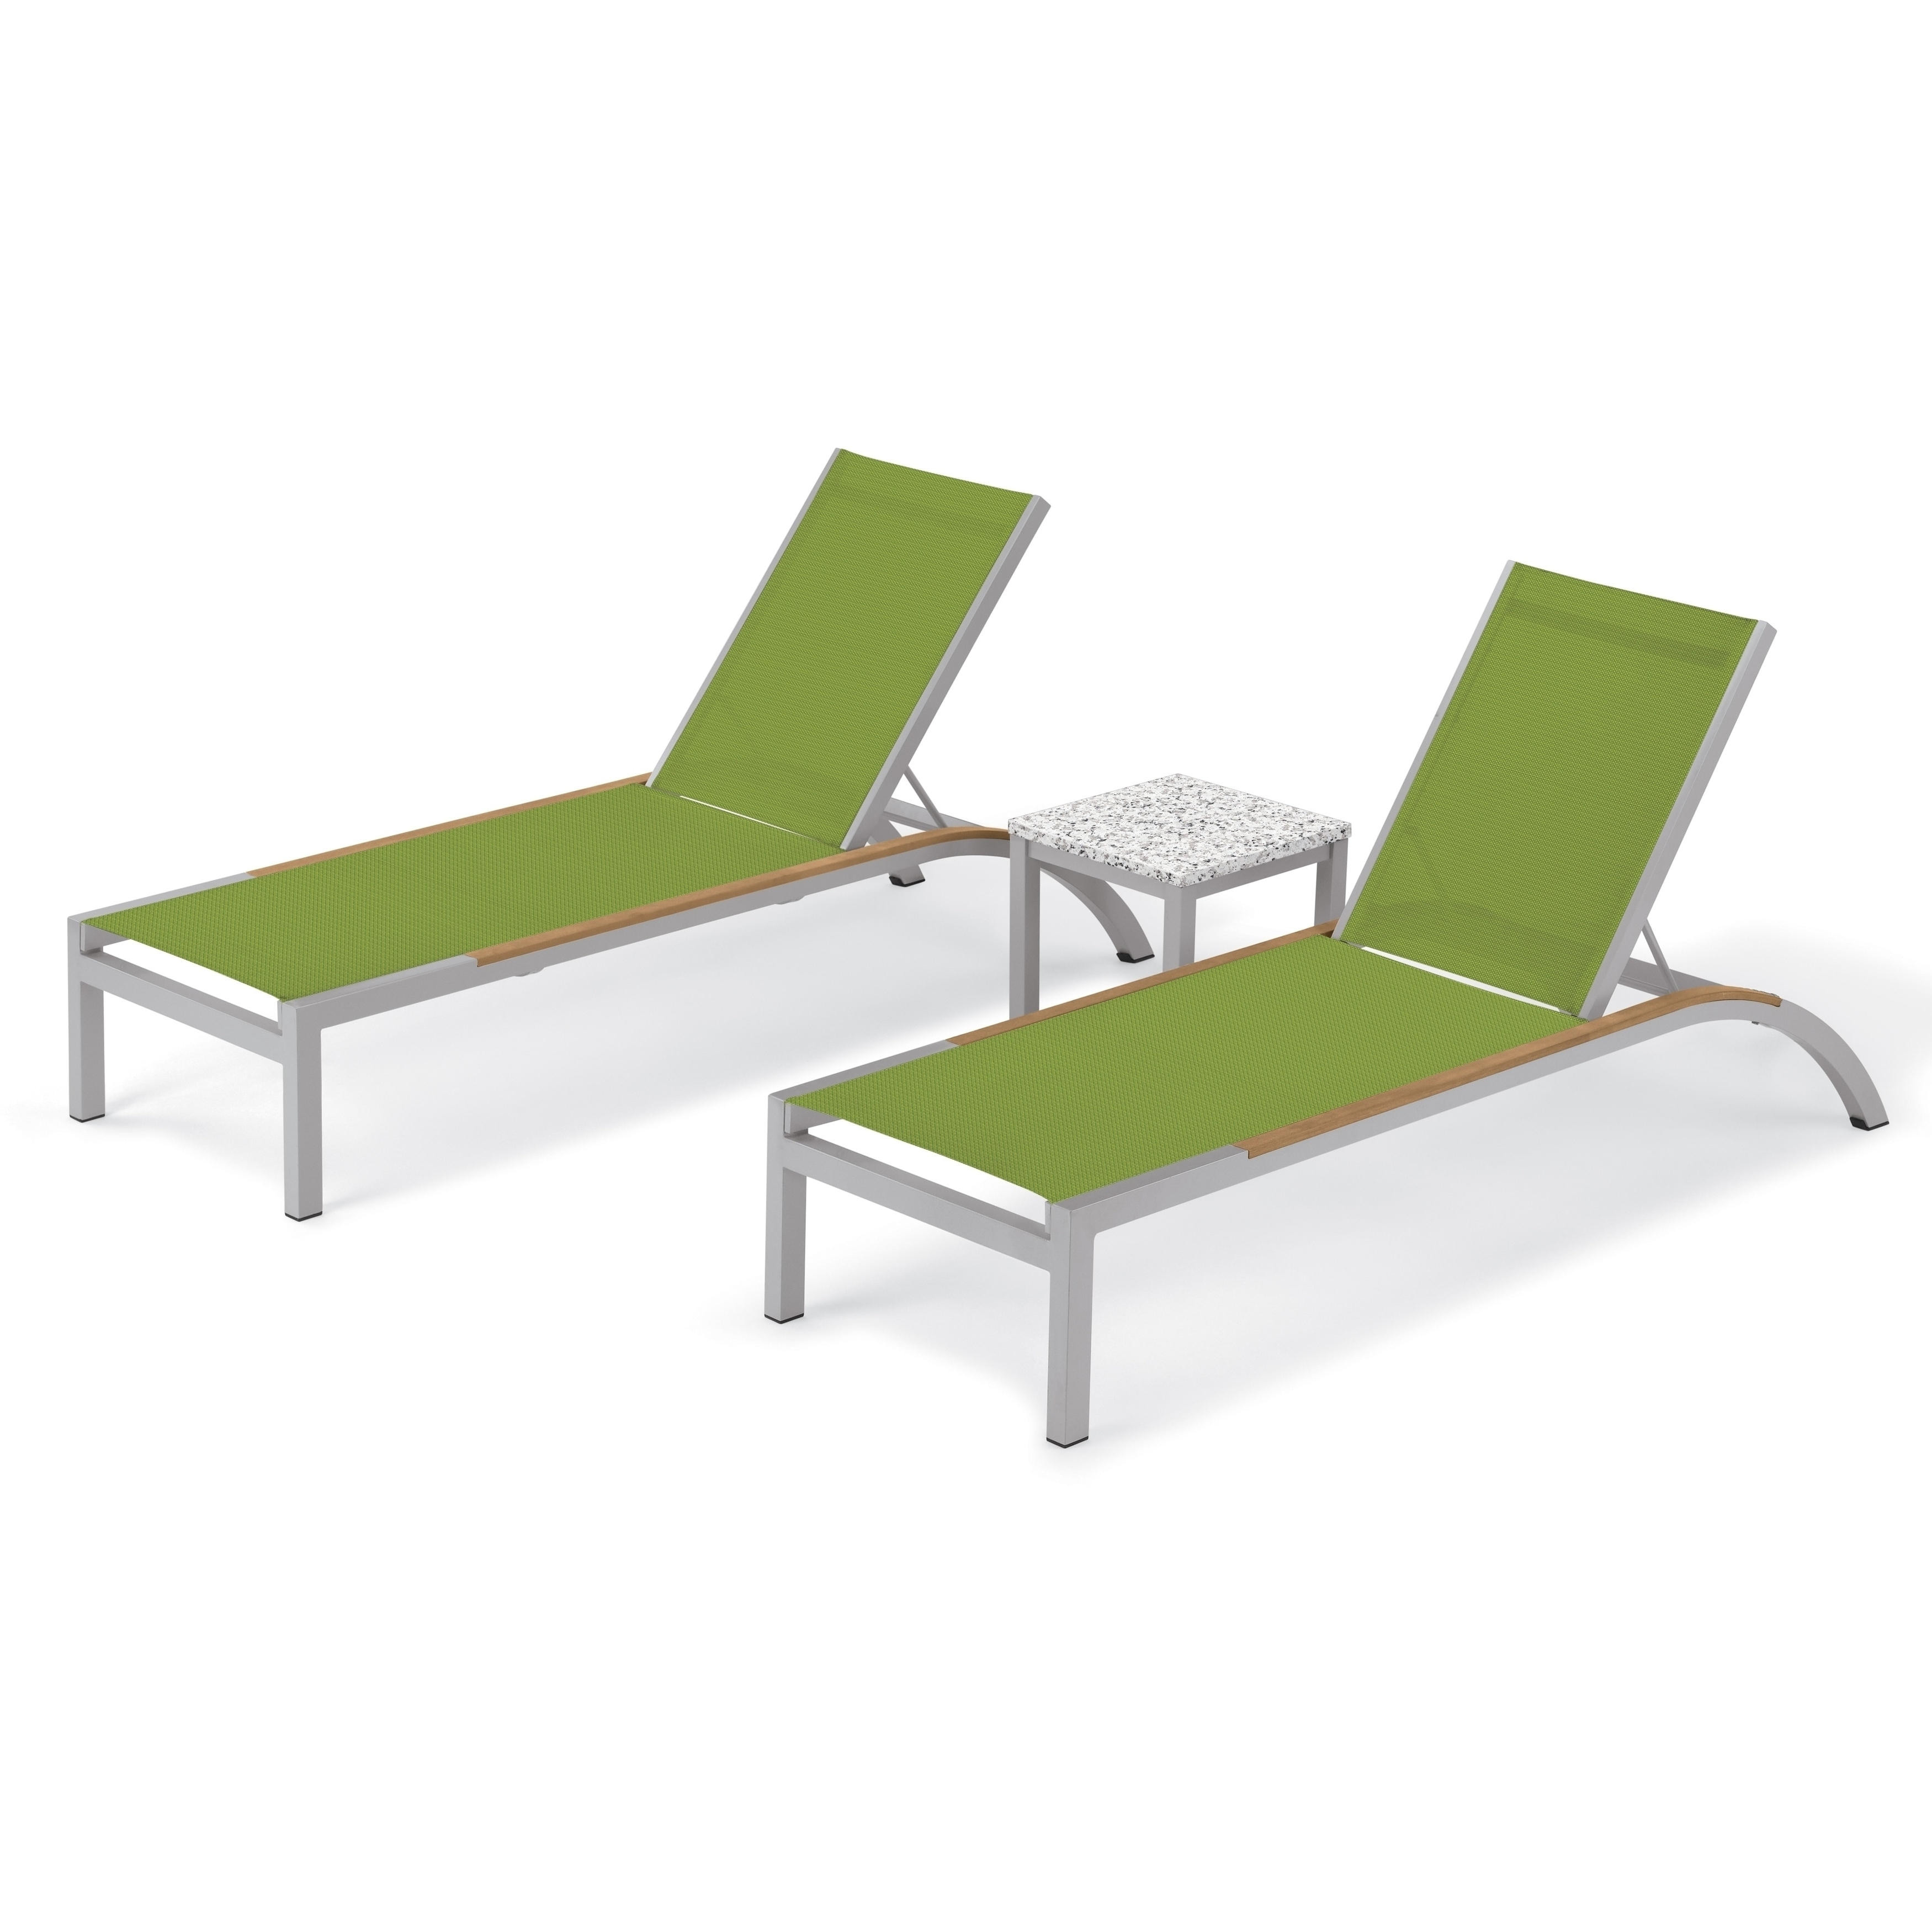 Oxford Garden Argento 3 Piece Tekwood Natural Side Rails Regarding Well Liked Nautical 3 Piece Outdoor Chaise Lounge Sets With Table (View 18 of 25)